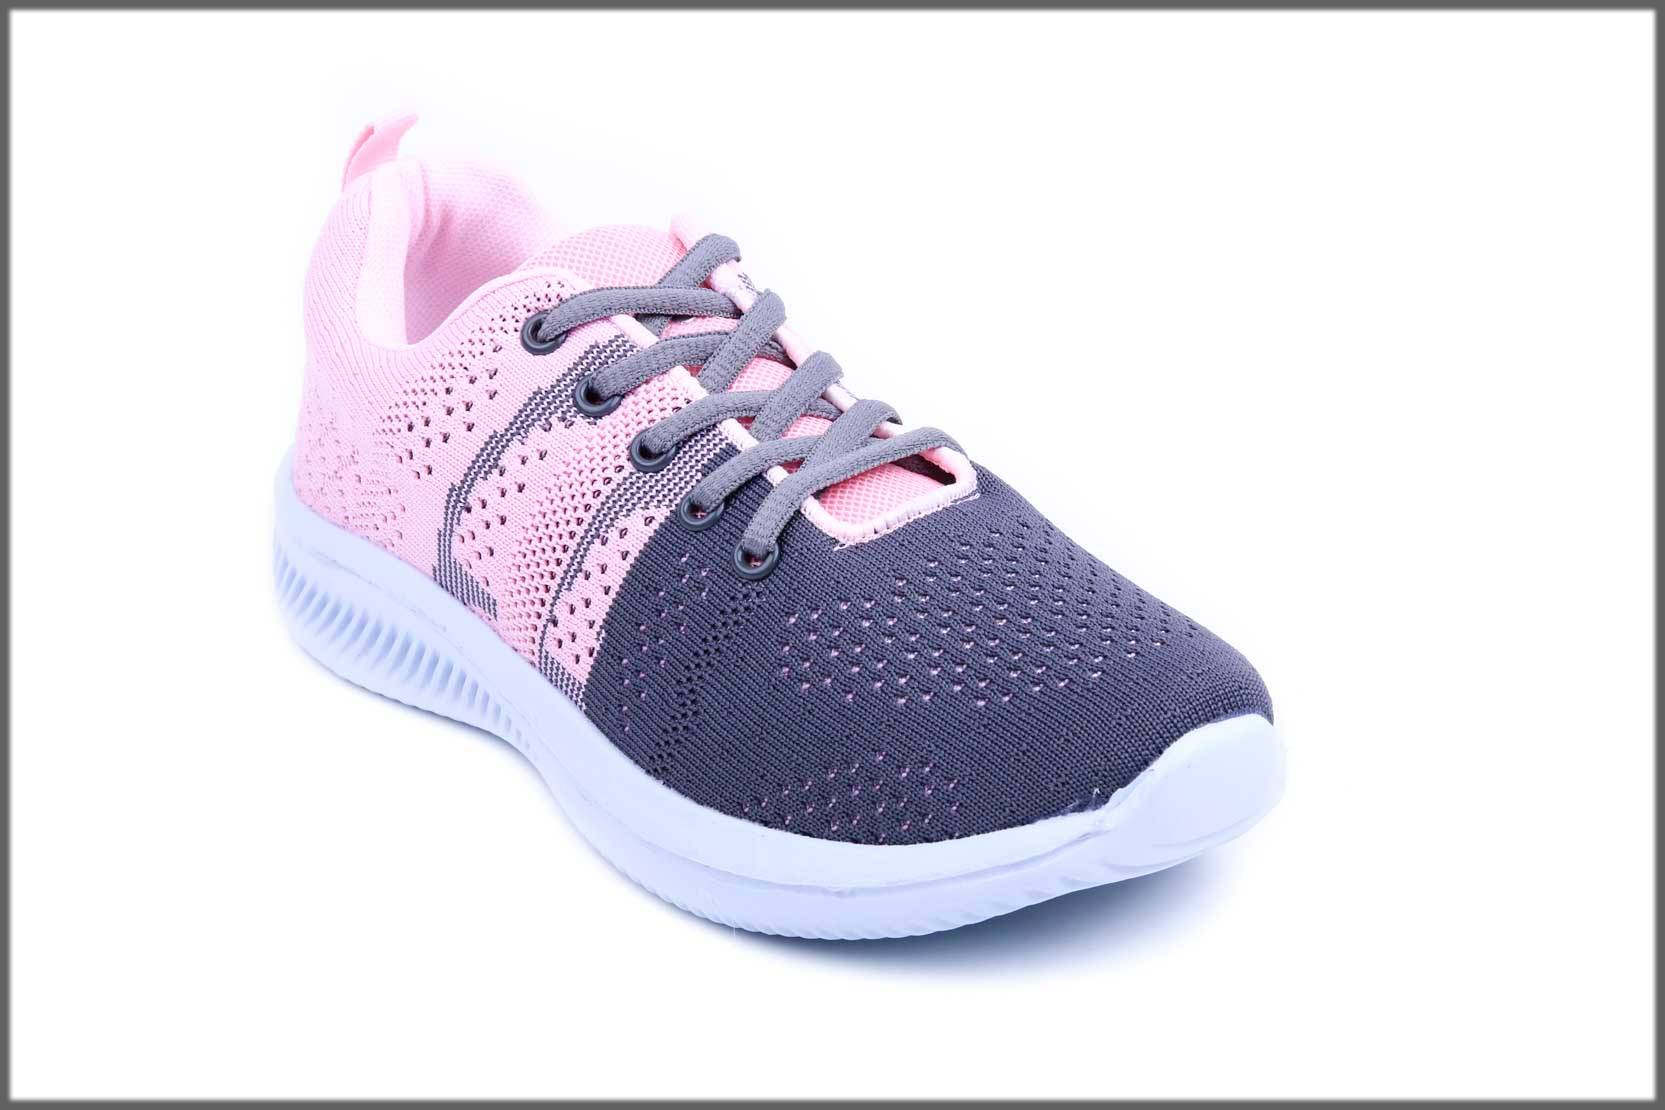 dual shaded winter wear innovative jogger shoes for women